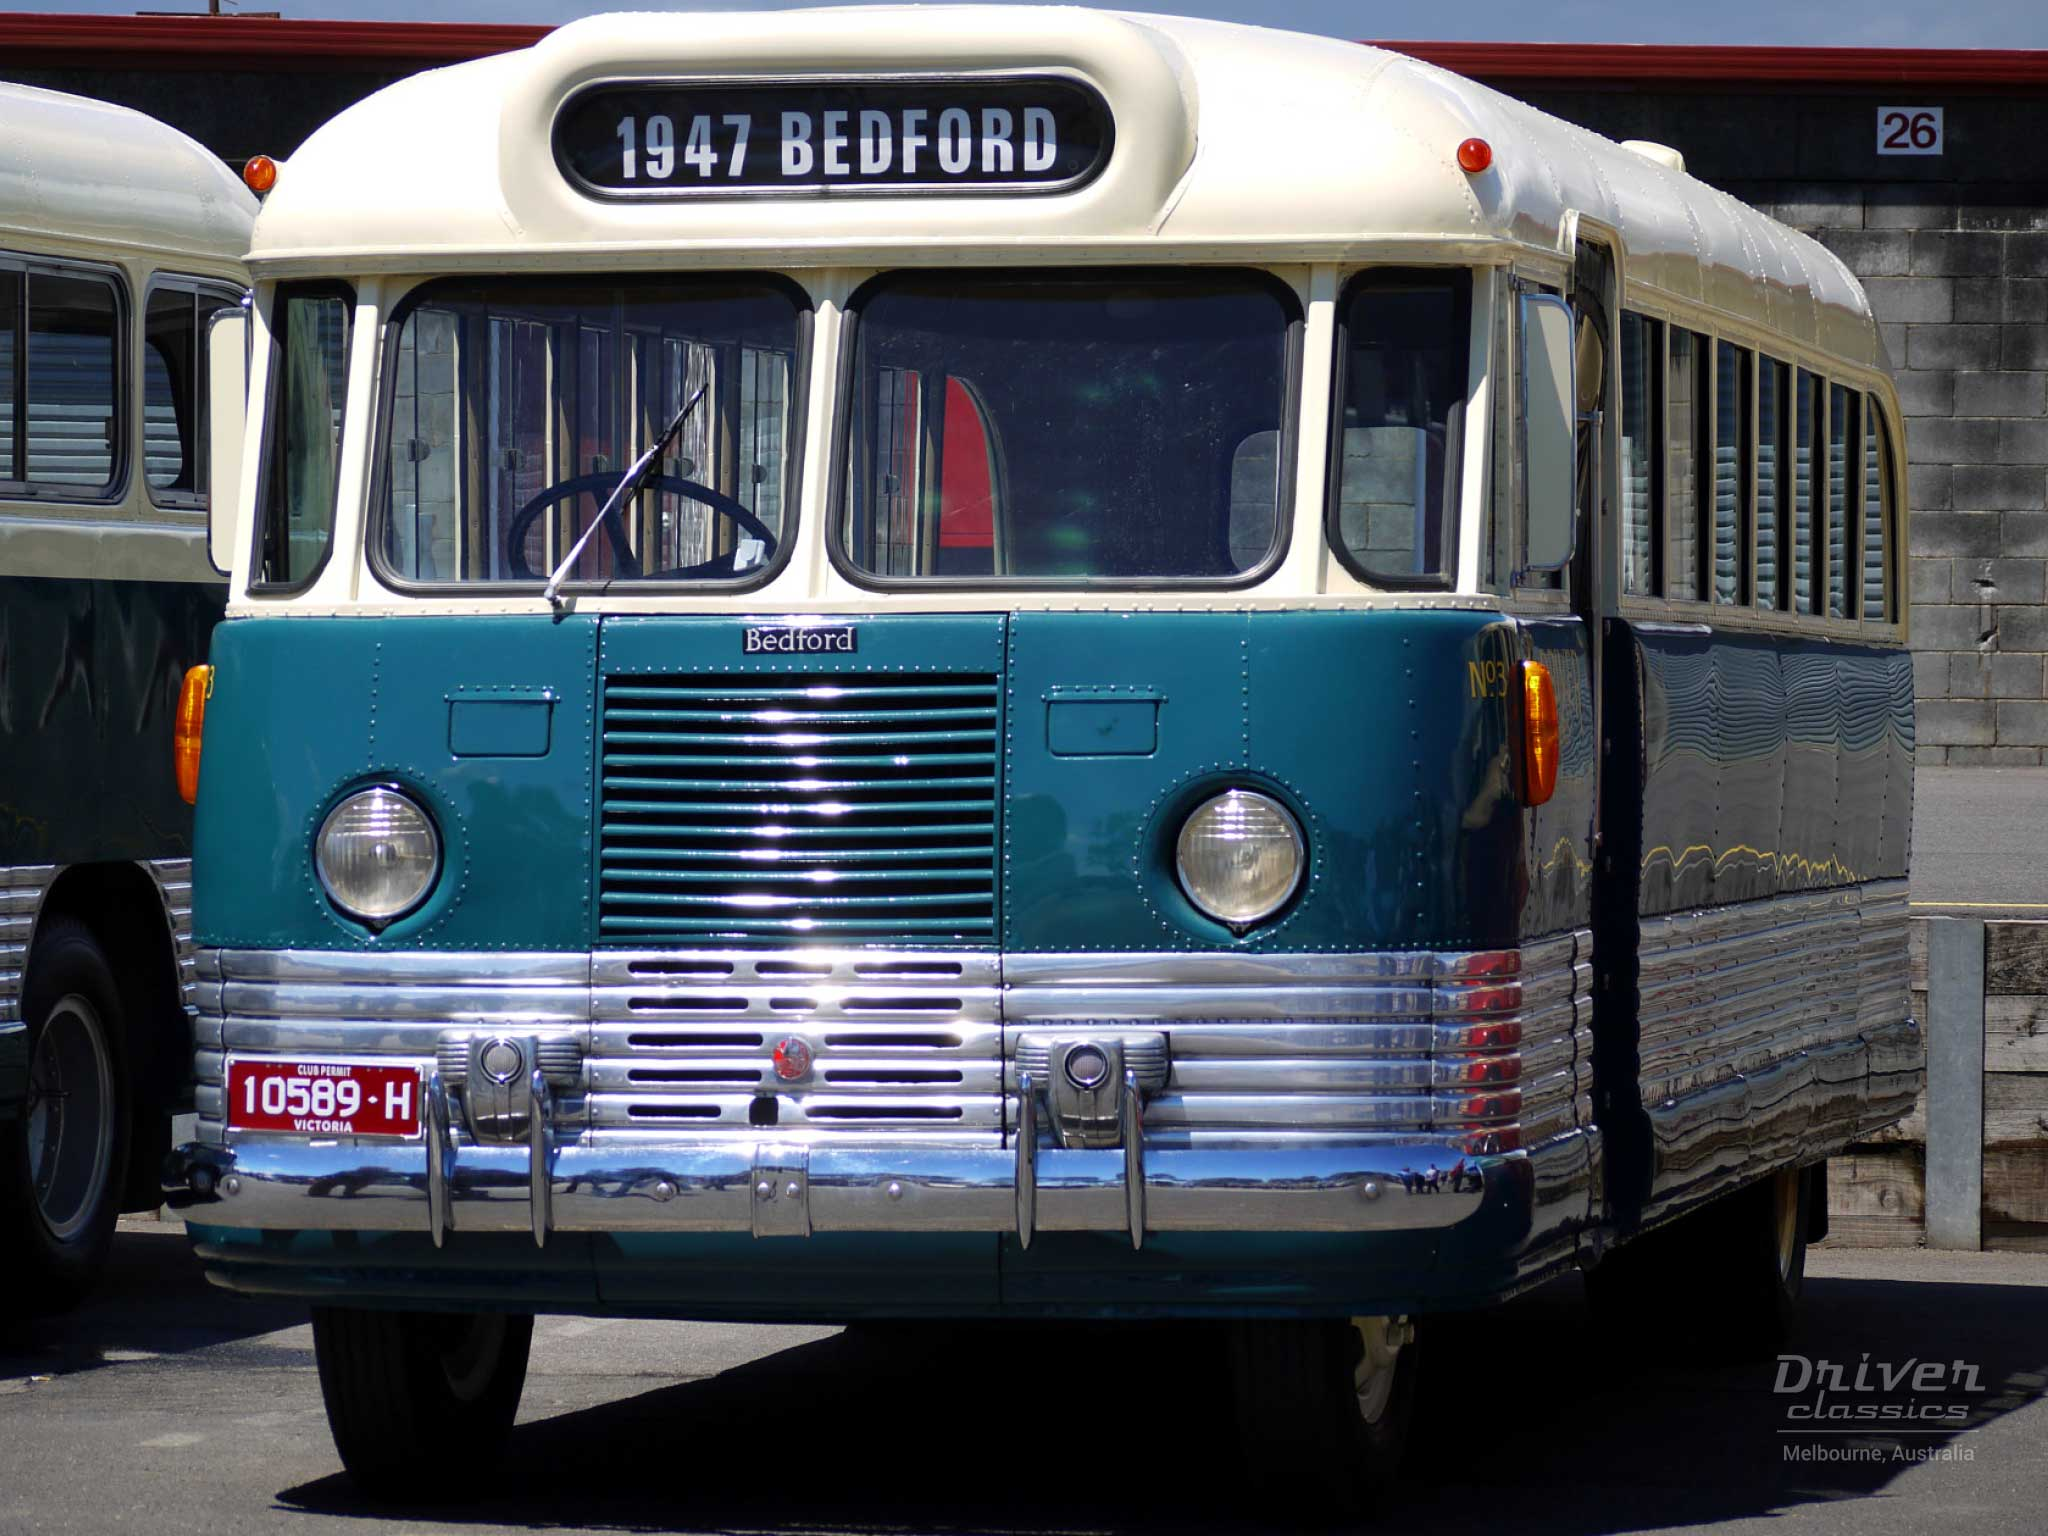 1947 Bedford OB bus, Photo taken November 2007